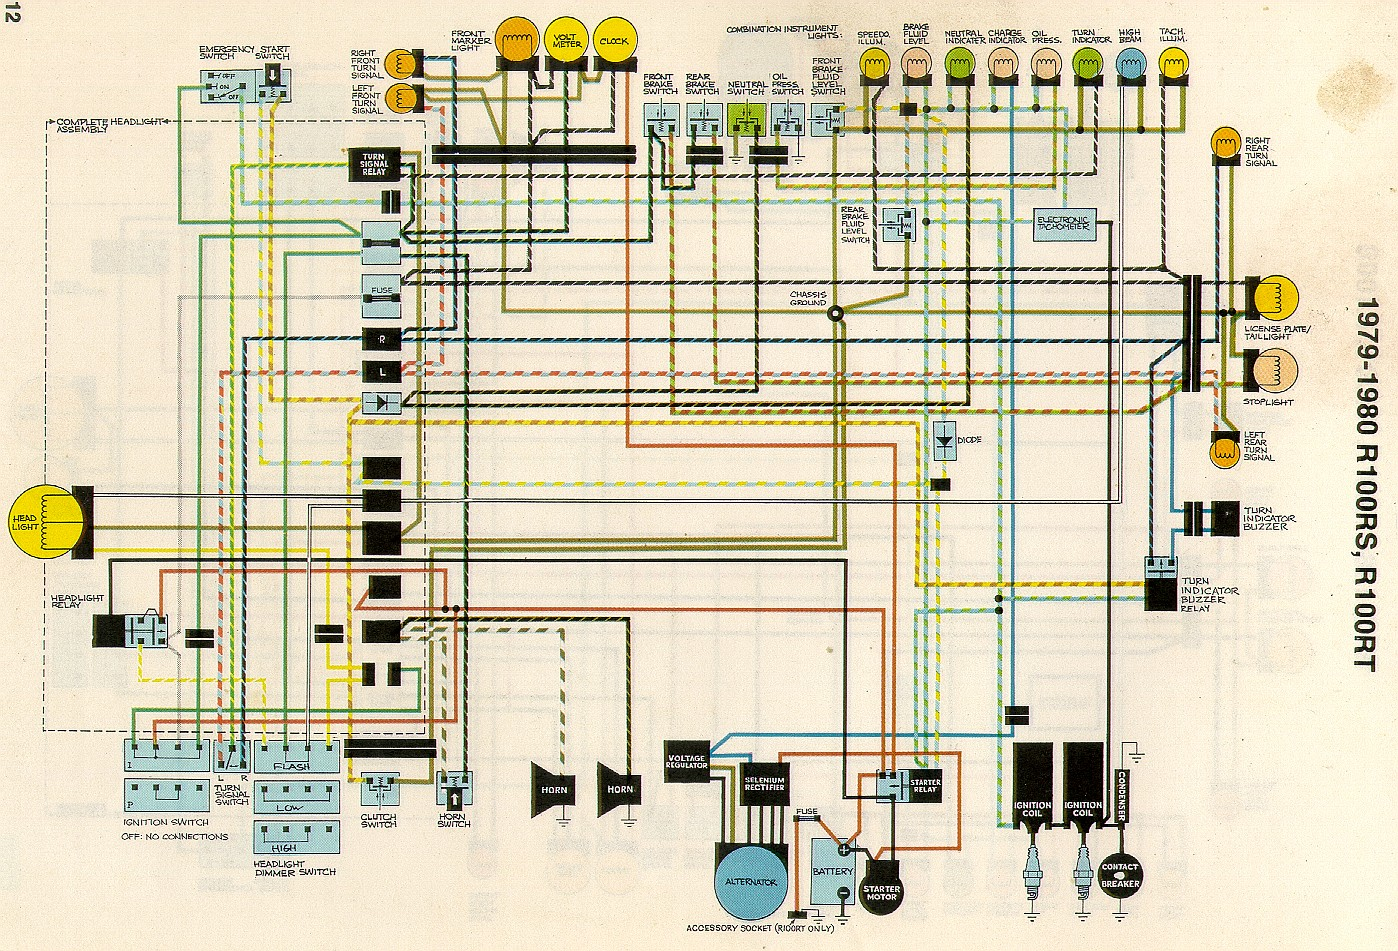 79rs 5 united articles wiring diagrams bmw r100rs gauge wiring diagram at pacquiaovsvargaslive.co